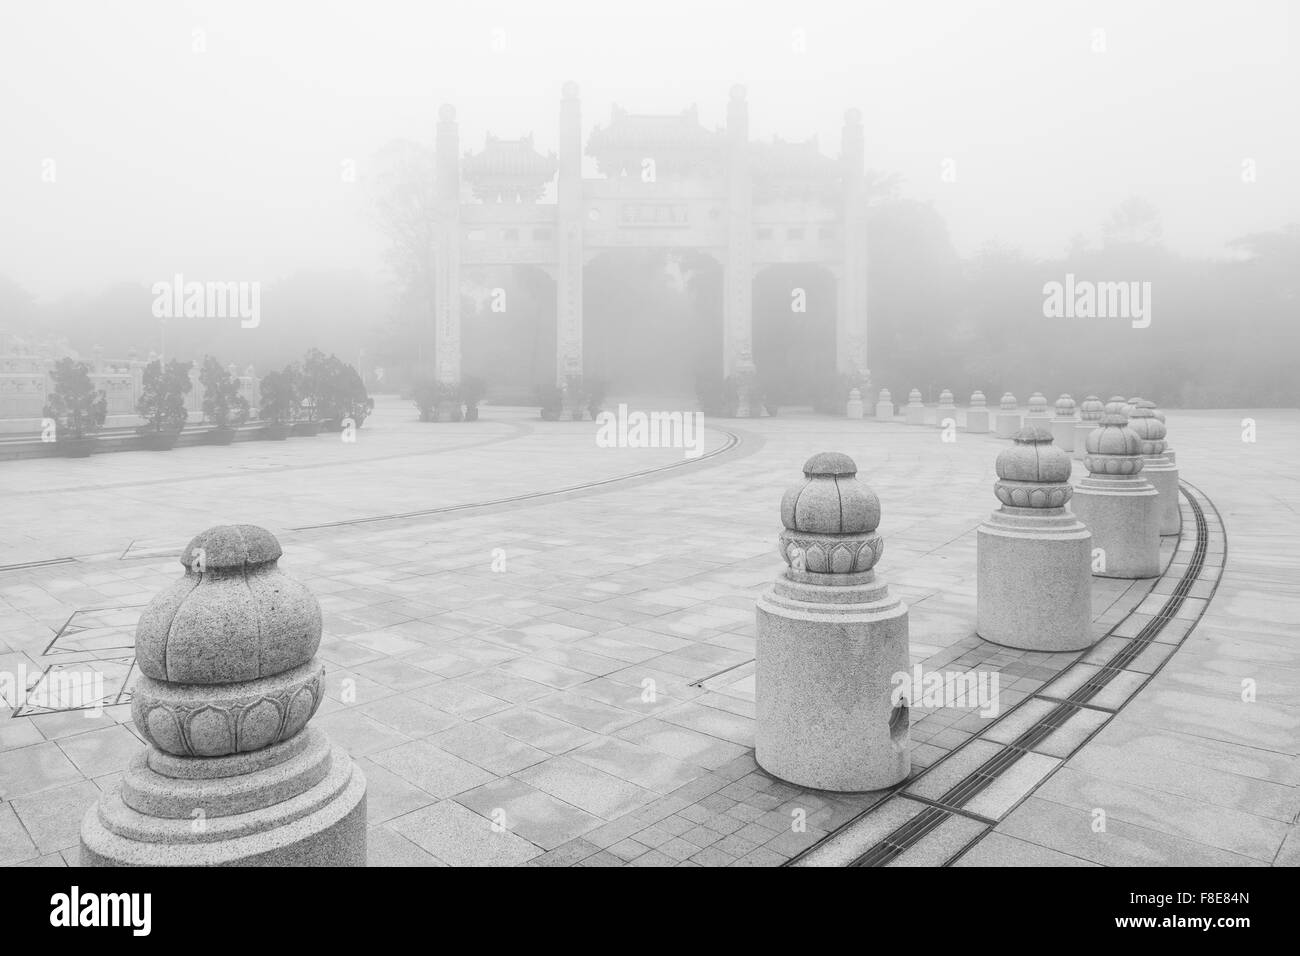 Mountain Gate at the Po Lin Monastery on Lantau Island in Hong Kong, China, at a foggy morning in black&white. - Stock Image